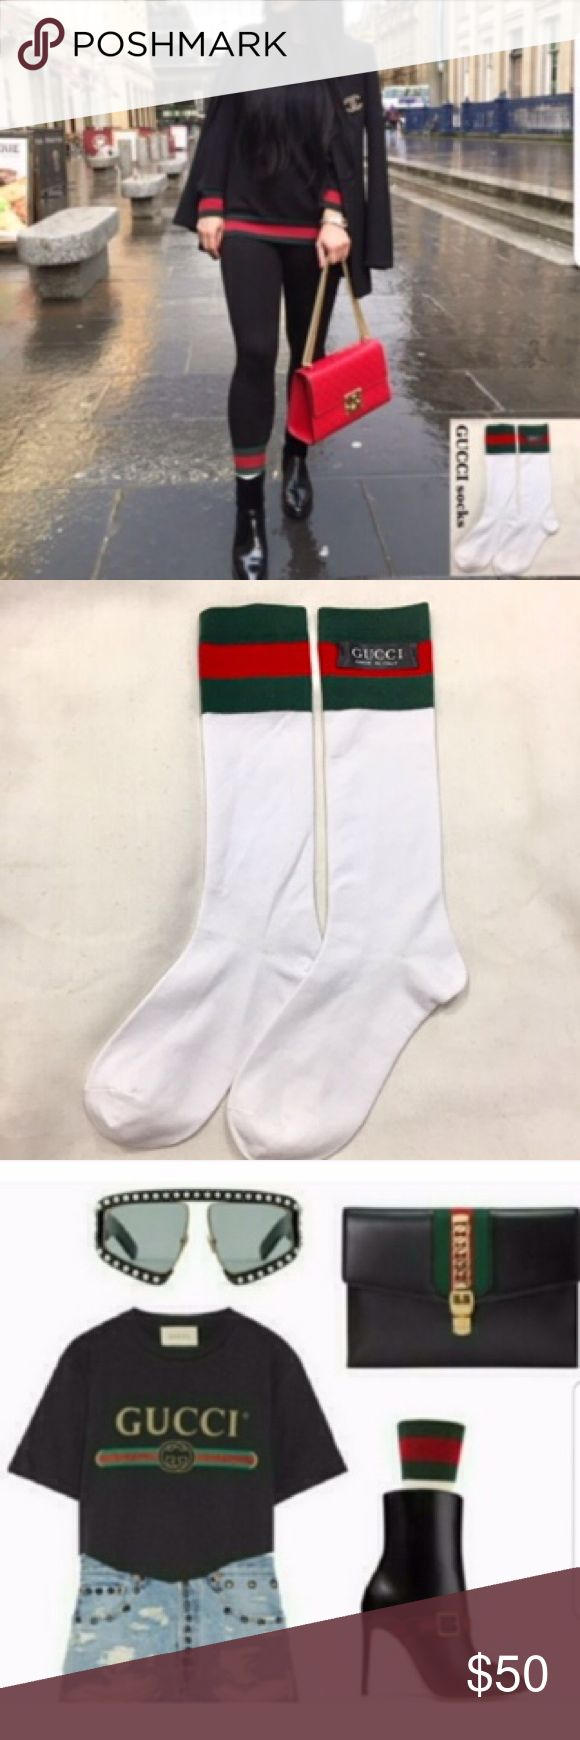 Authentic GUCCI socks striped green red white . . 🔴 PRICE FIRM.   NOT accepting offers . . NEW Authentic GUCCI unisex socks. No tags Green red stripes. WHITE main If perfect, retails. $100+  These did not pass final inspection. So may have minor irregularity. (Checked & Looks ok to me)  A LUXE to complement women's leather boots purse tote bag, dress, pants, shorts outfit. . . 🔴NOT accepting offers. TY . . If paid before 12:00 noon, I will send off the same day (excluding weekend/holiday)…